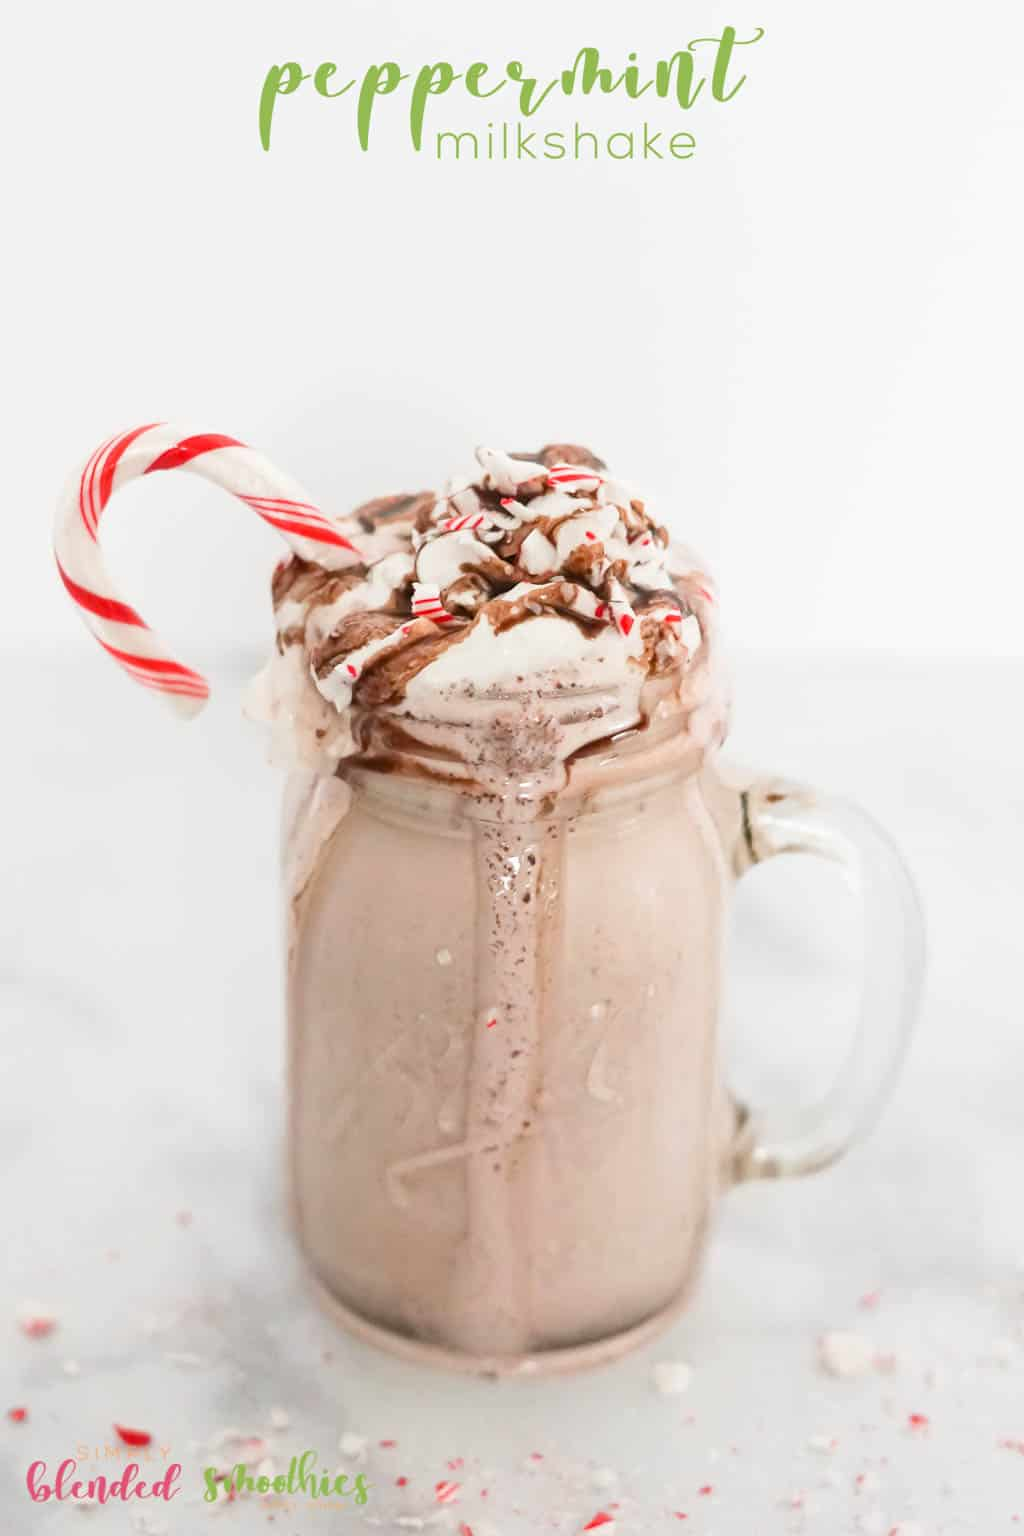 How to make a knock-off Peppermint Shake - peppermint milkshake - pappermint shake recipe